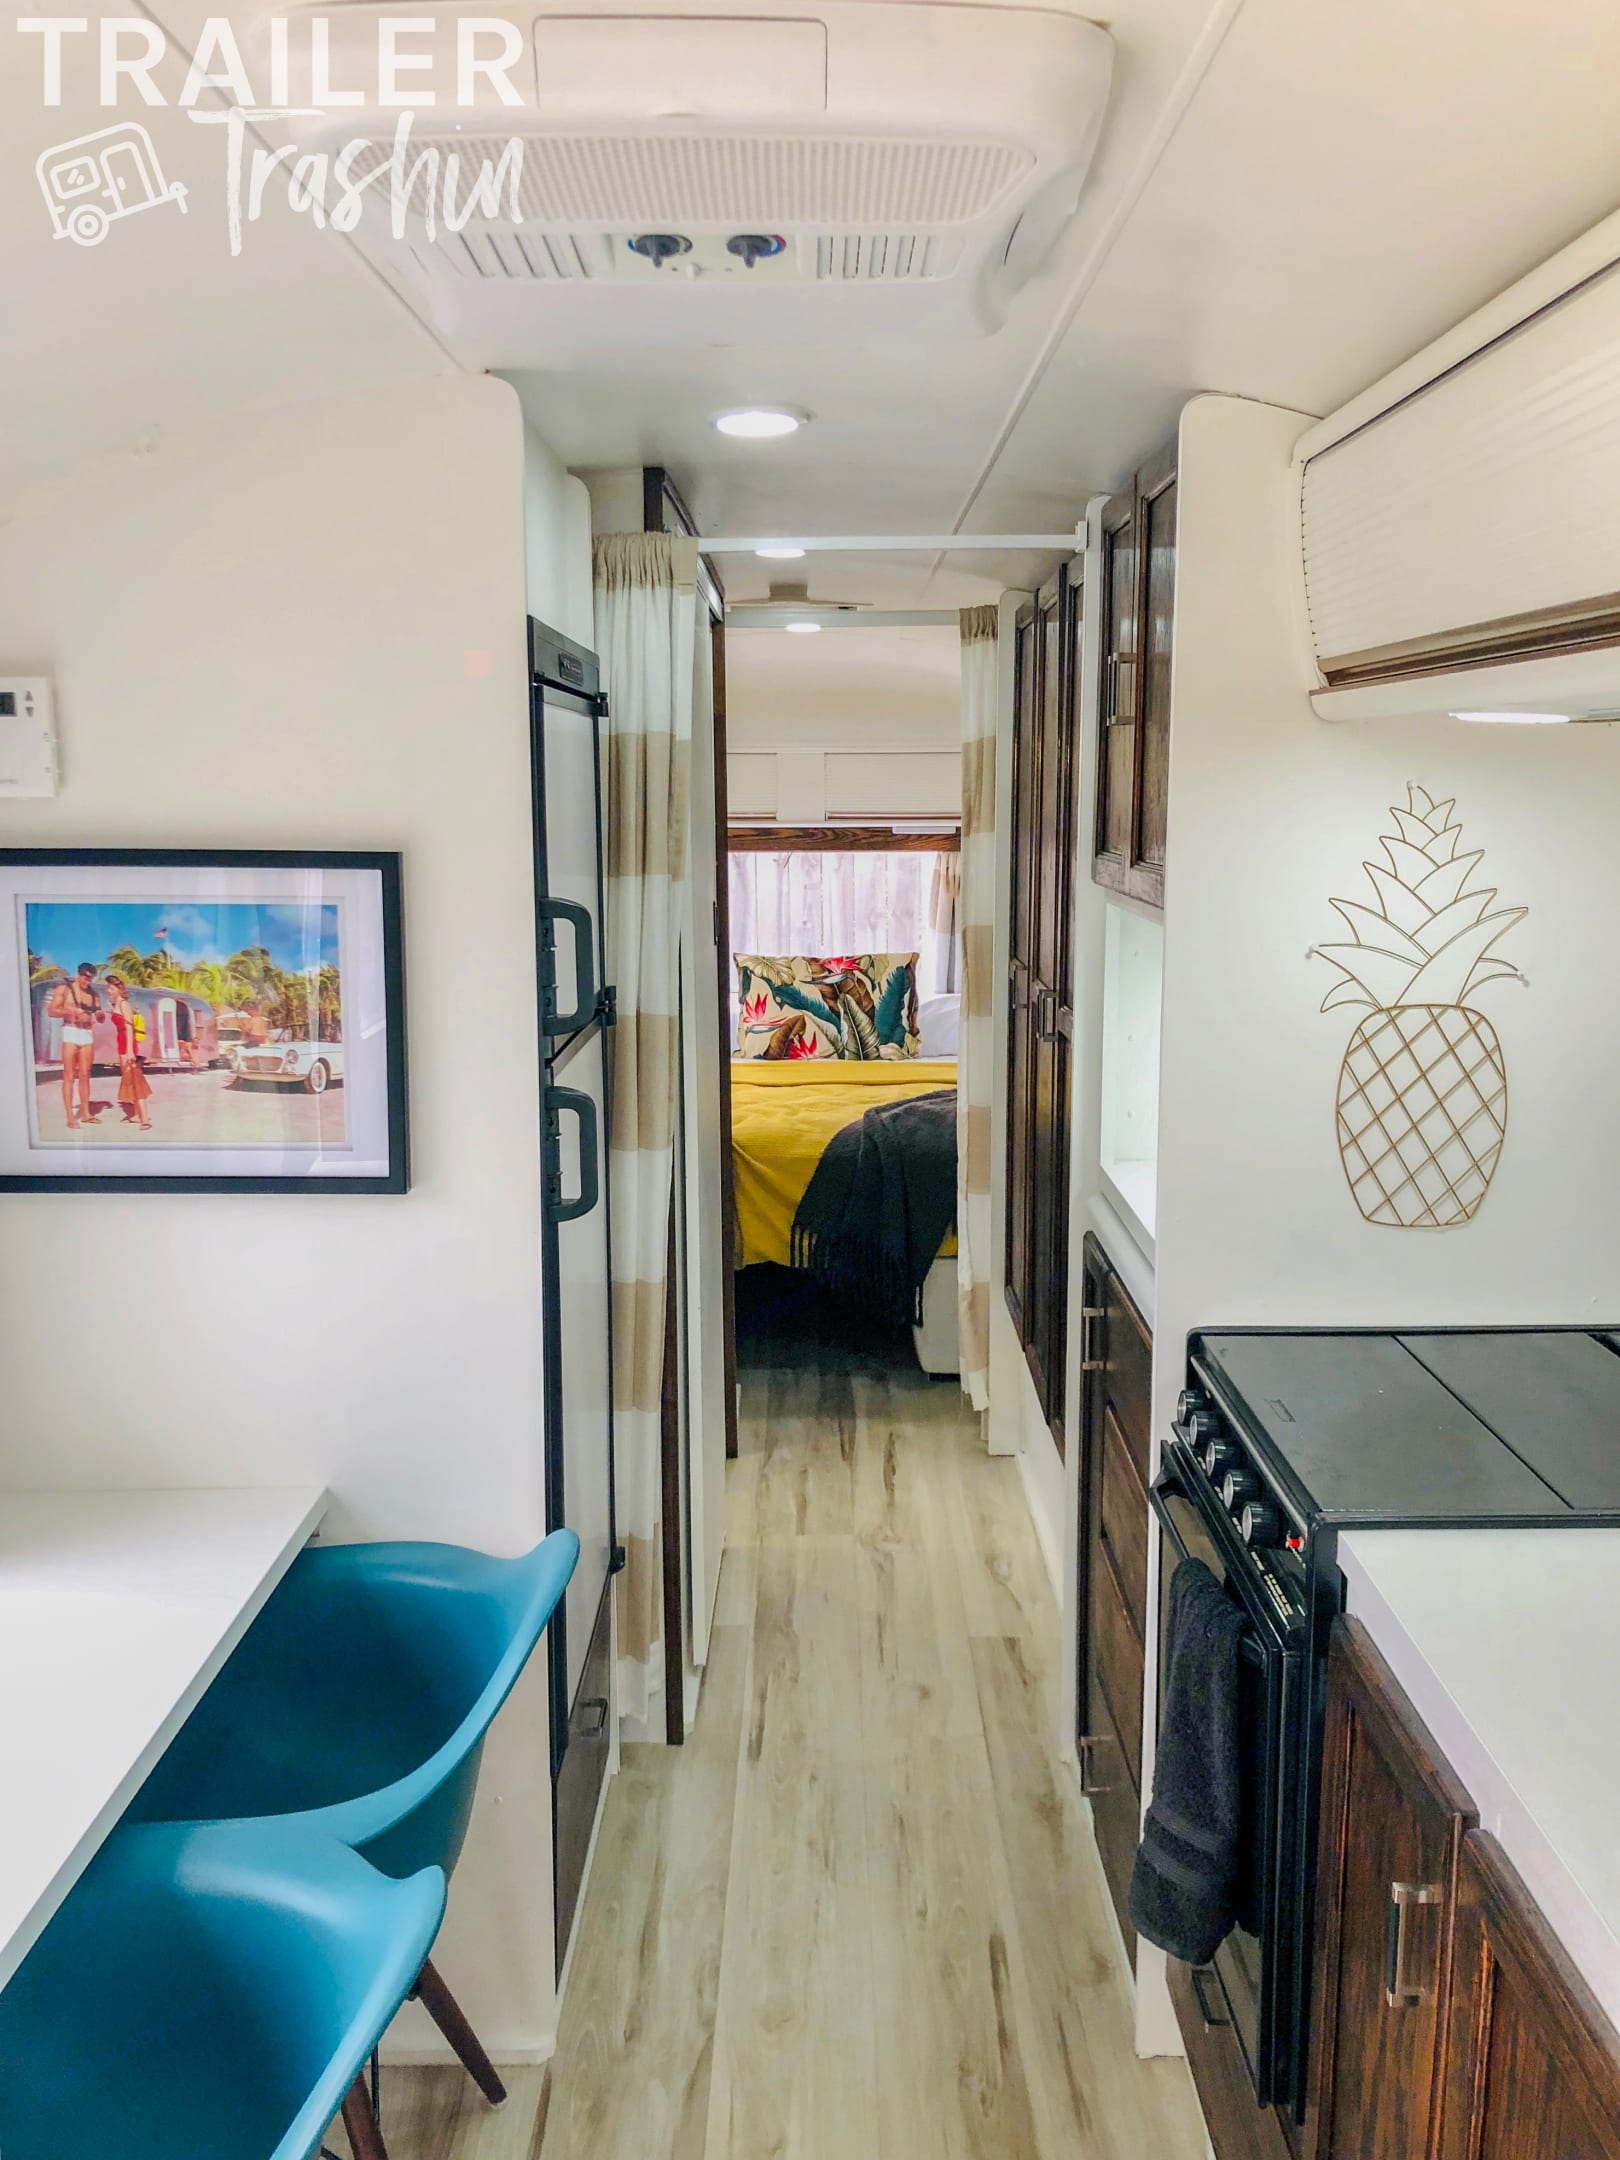 Master suite with ample storage, closets, and king size bed. There are partitions to offer some privacy in the small space. . Airstream Sovereign 1985